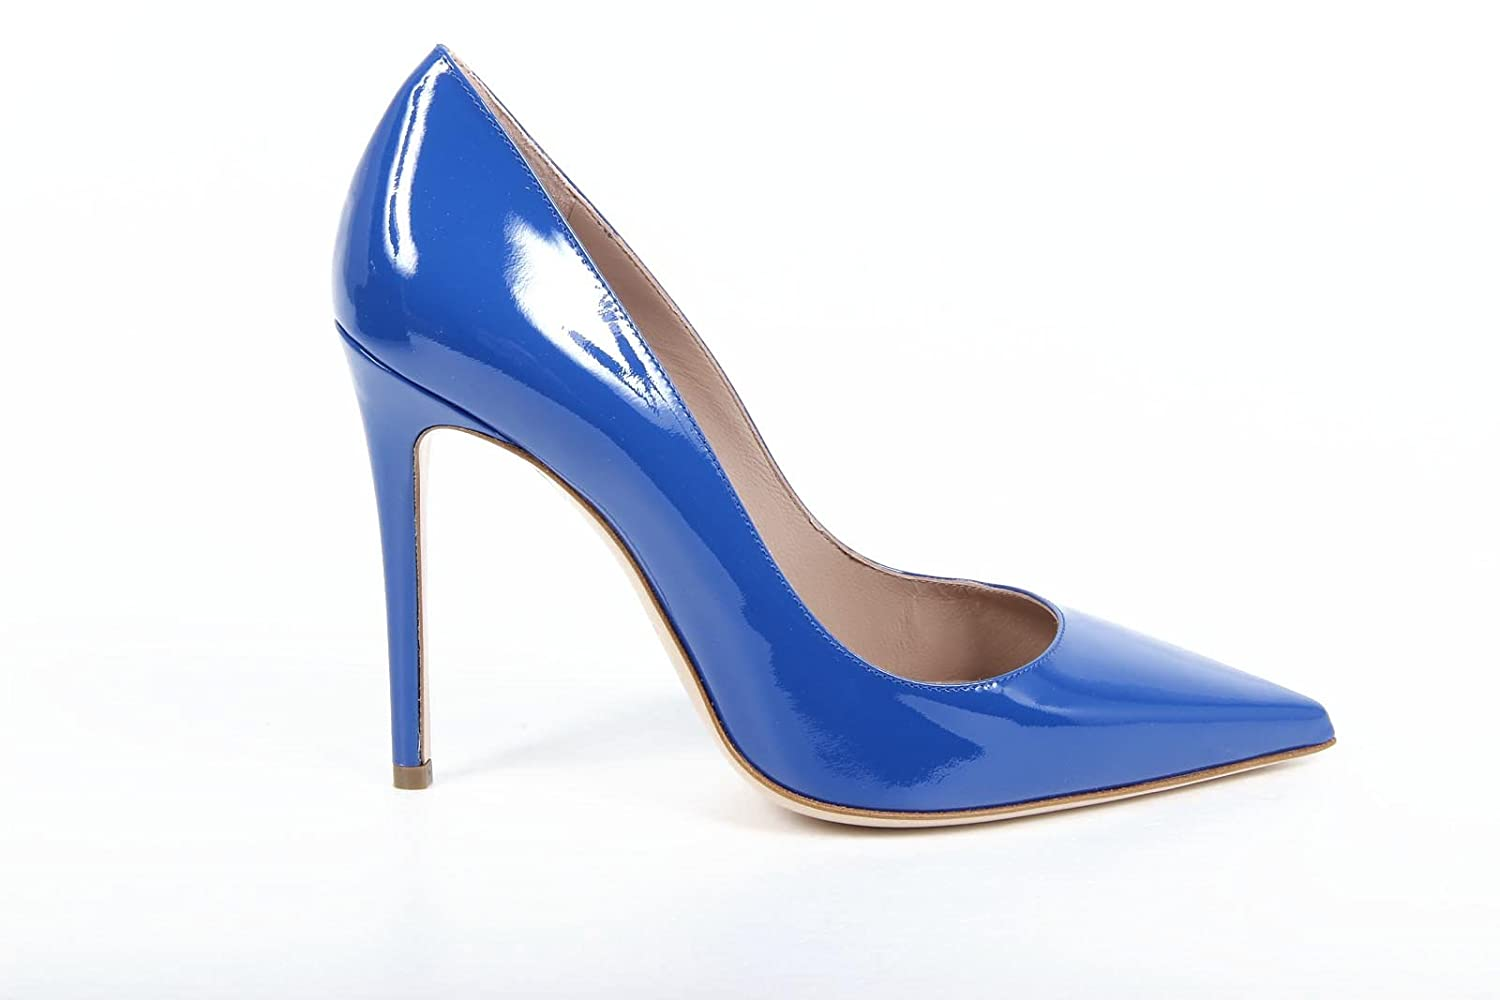 edfa545d5f8 Versace 19.69 Abbigliamento Sportivo Milano ladies pump 27903 VERNICE  BLUETTE  Amazon.co.uk  Shoes   Bags